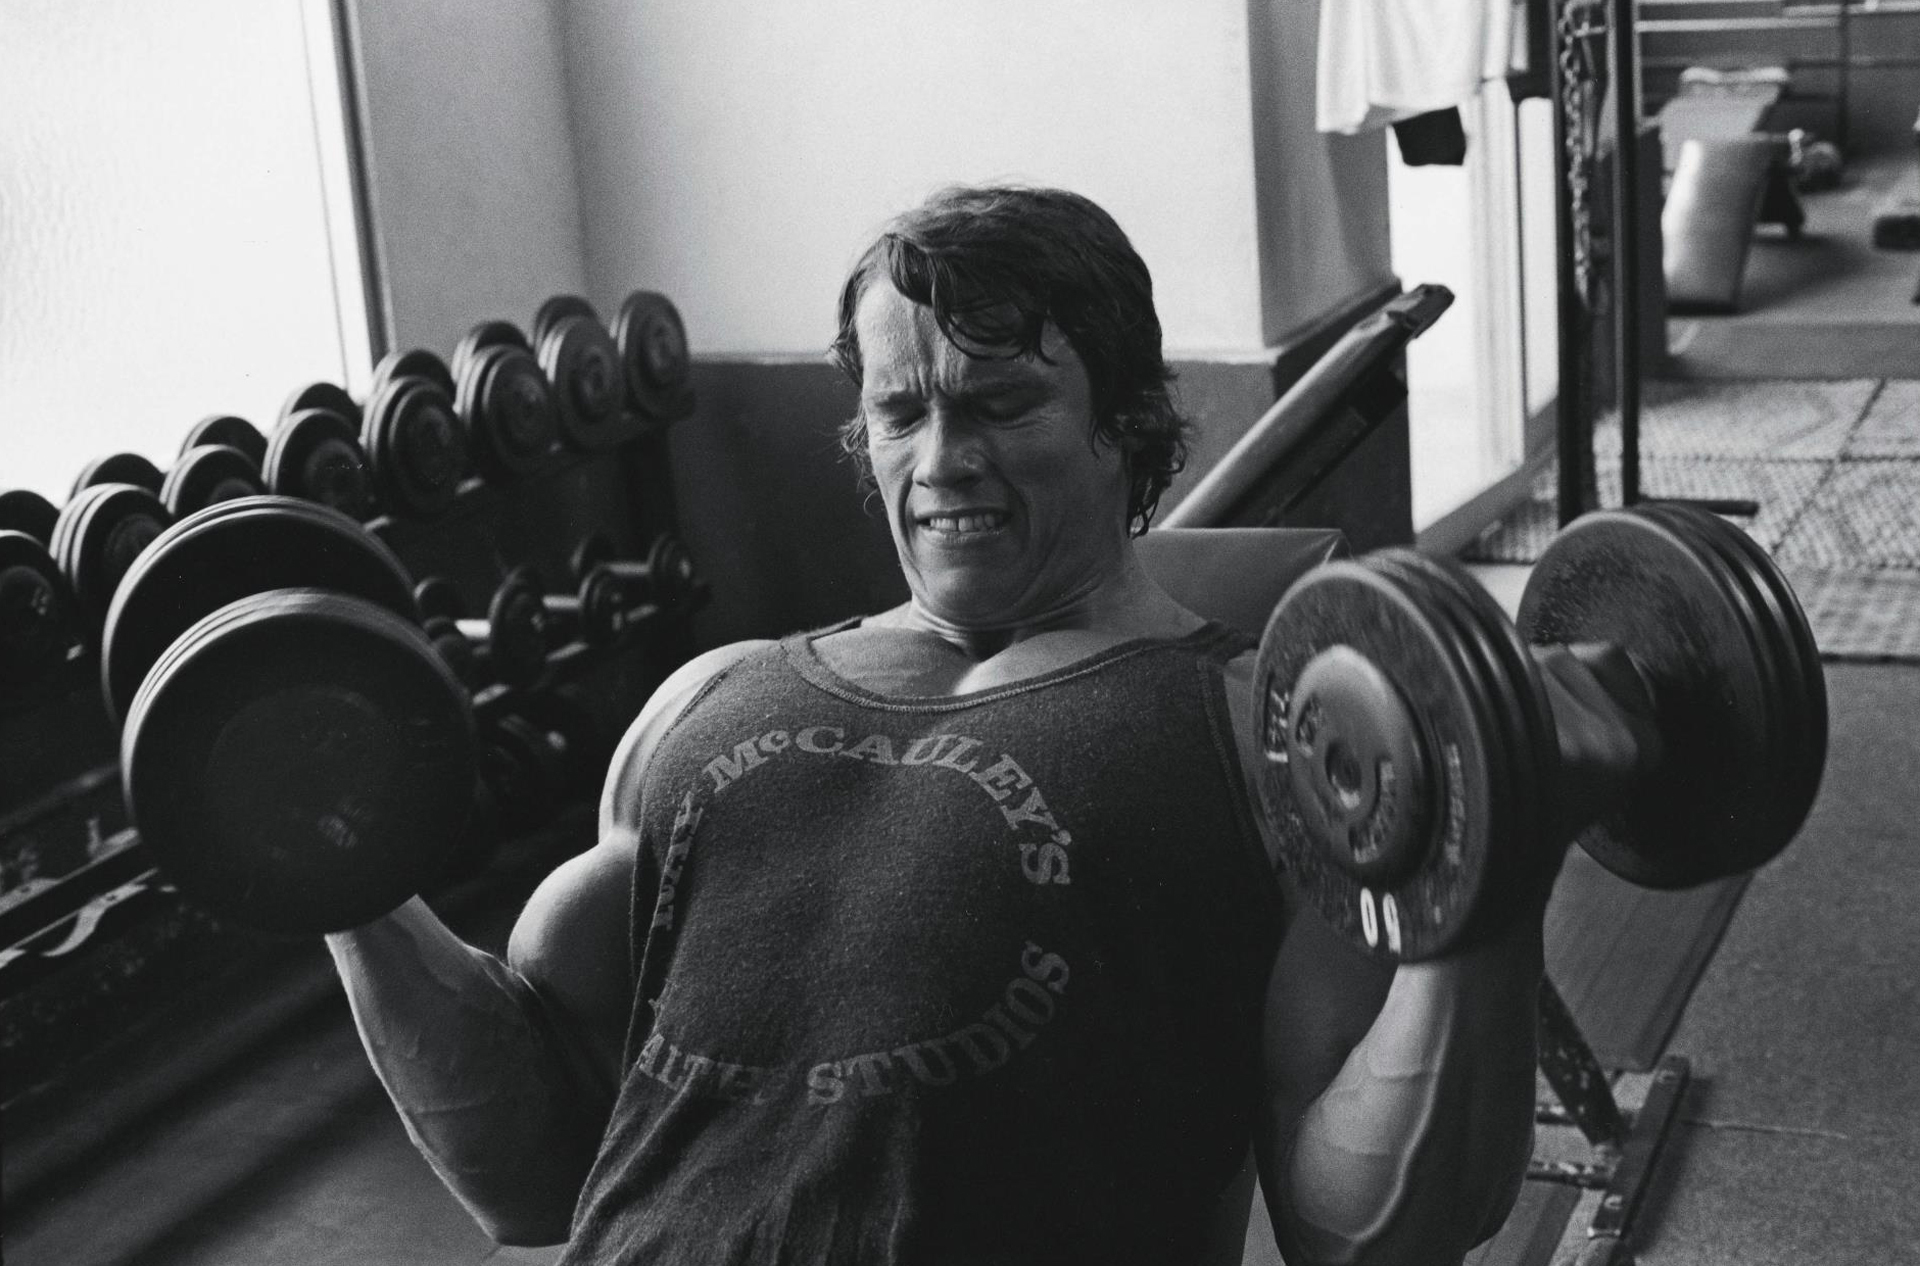 Arnold Schwarzenegger Bodybuilding Sports wallpaper backgroundArnold Schwarzenegger Bodybuilding Quotes Wallpaper